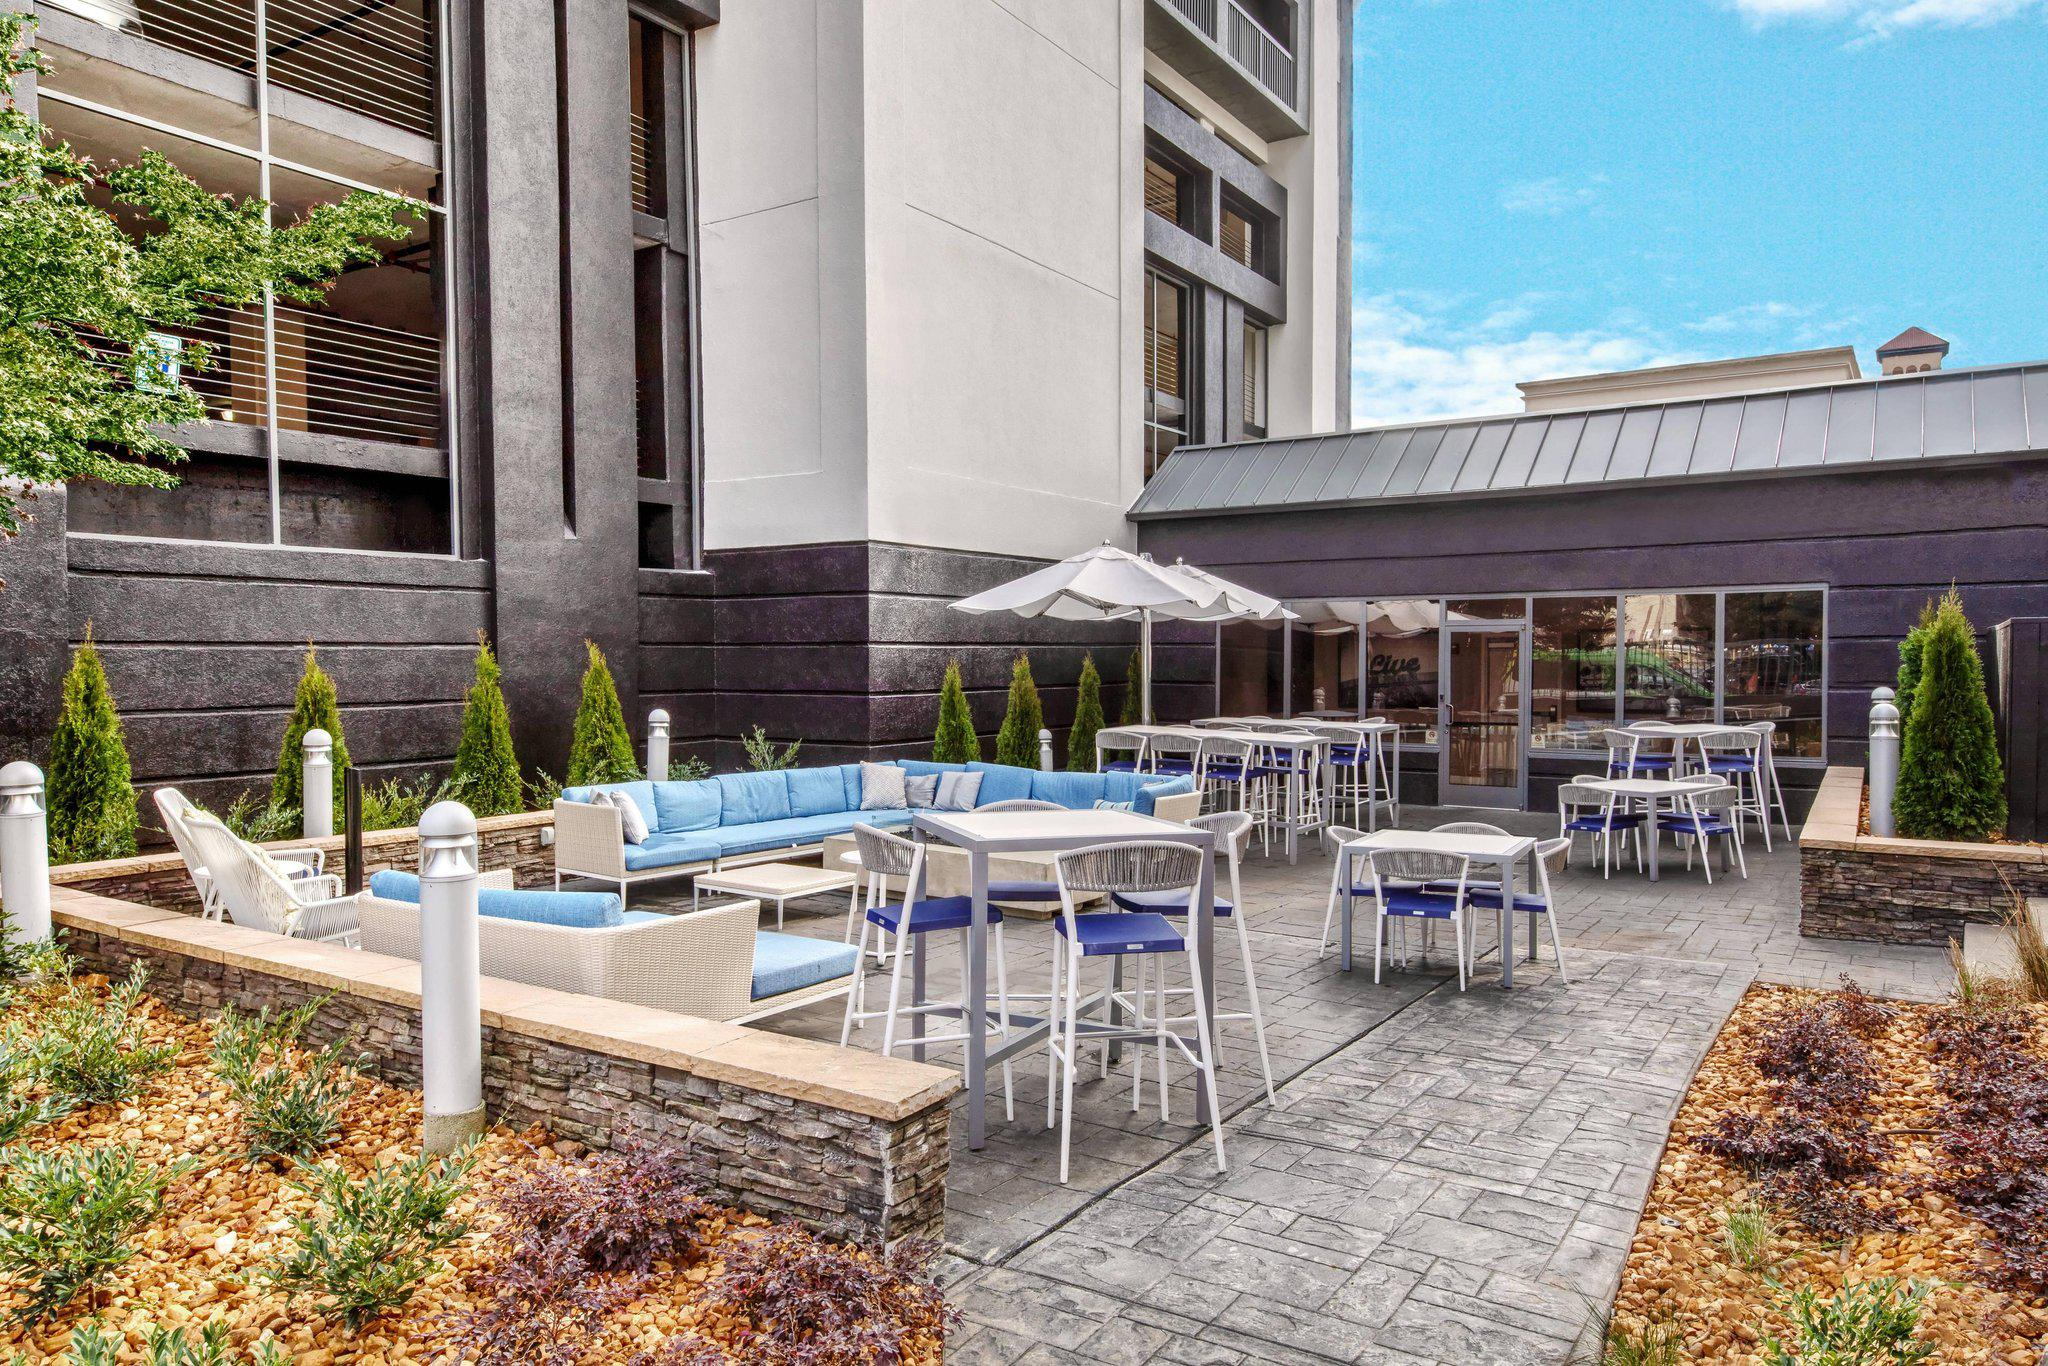 Courtyard by Marriott Nashville Vanderbilt/West End